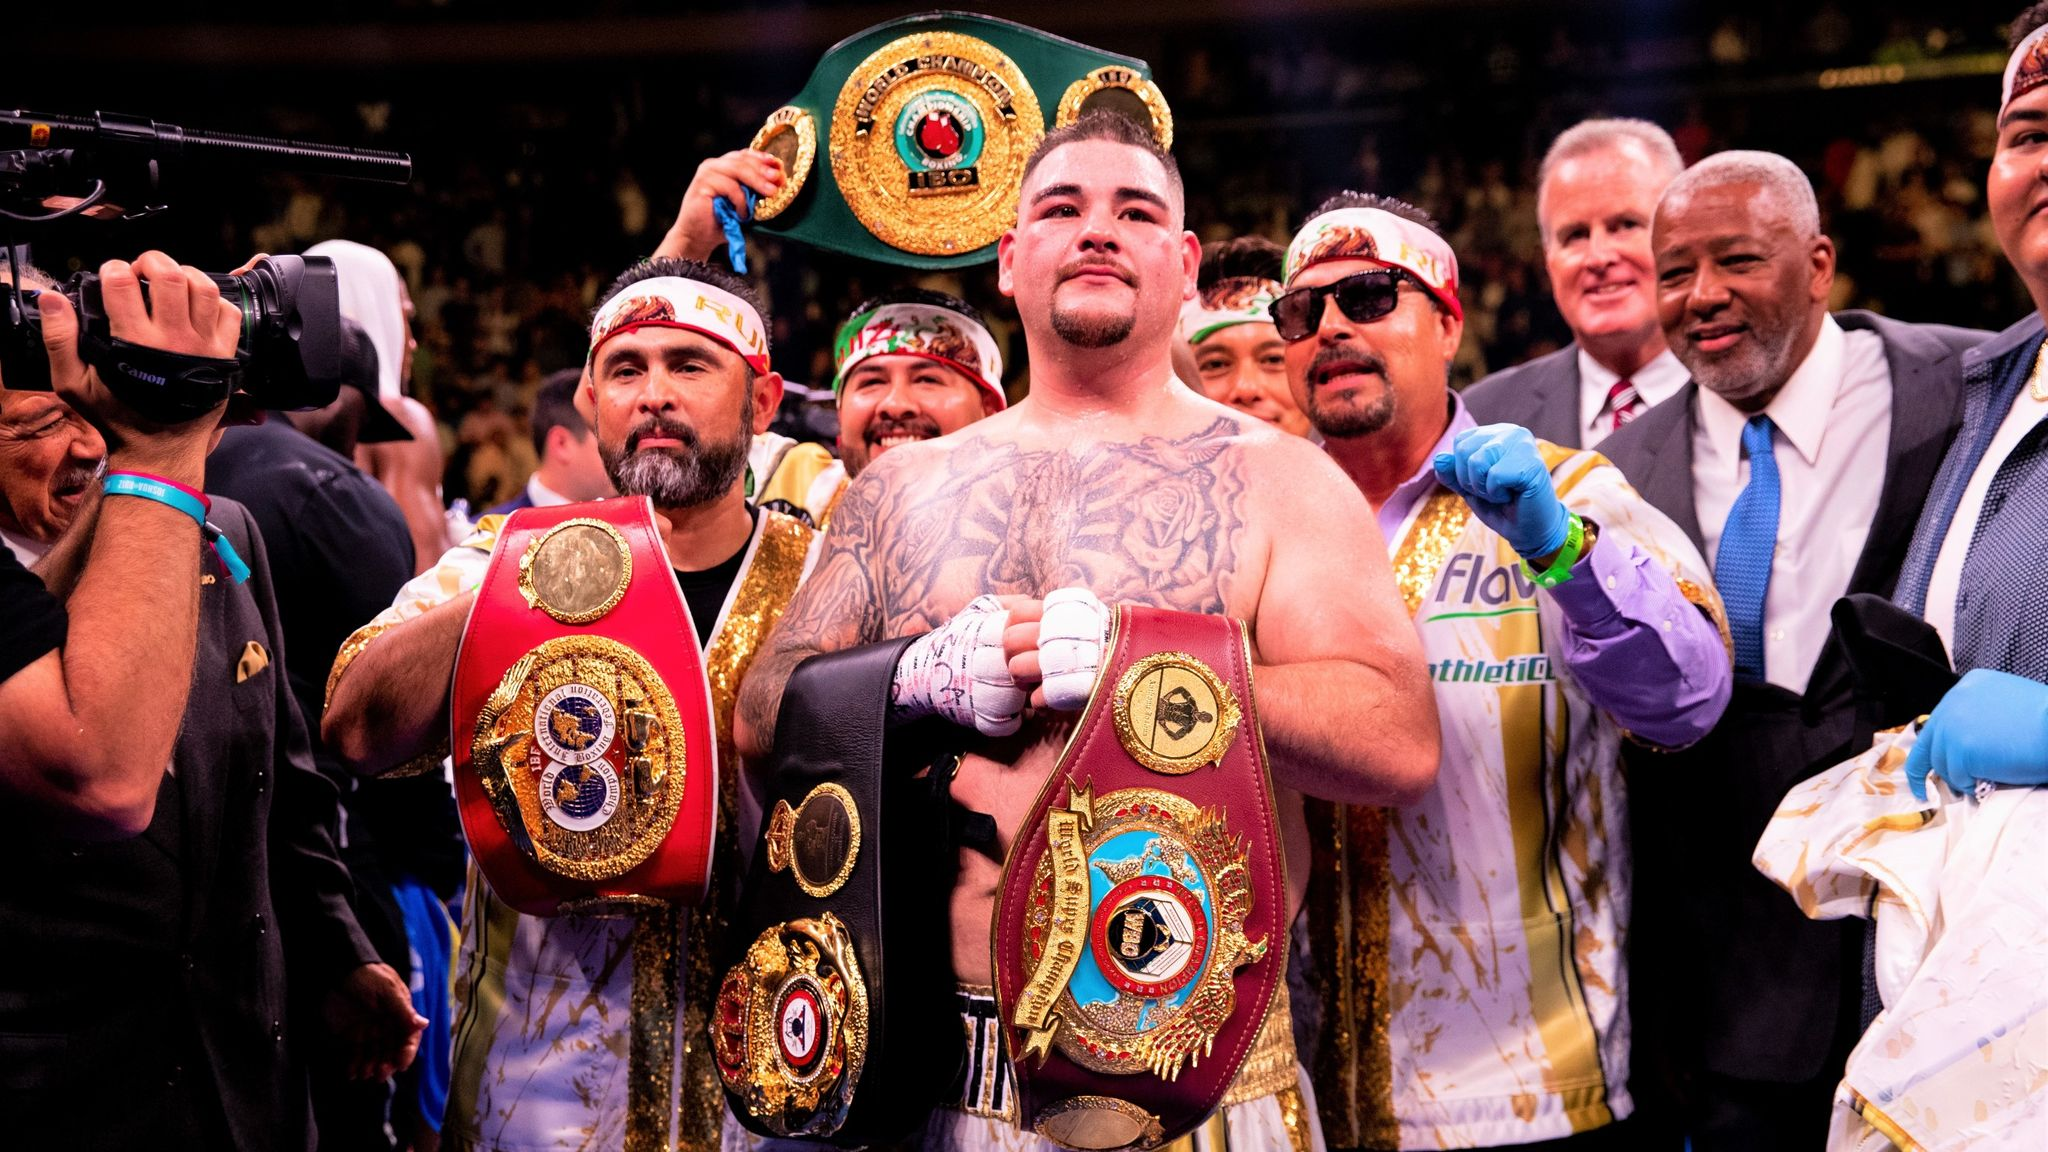 Andy Ruiz Jr a one-hit wonder? A new trainer is a new start but can he commit fully?